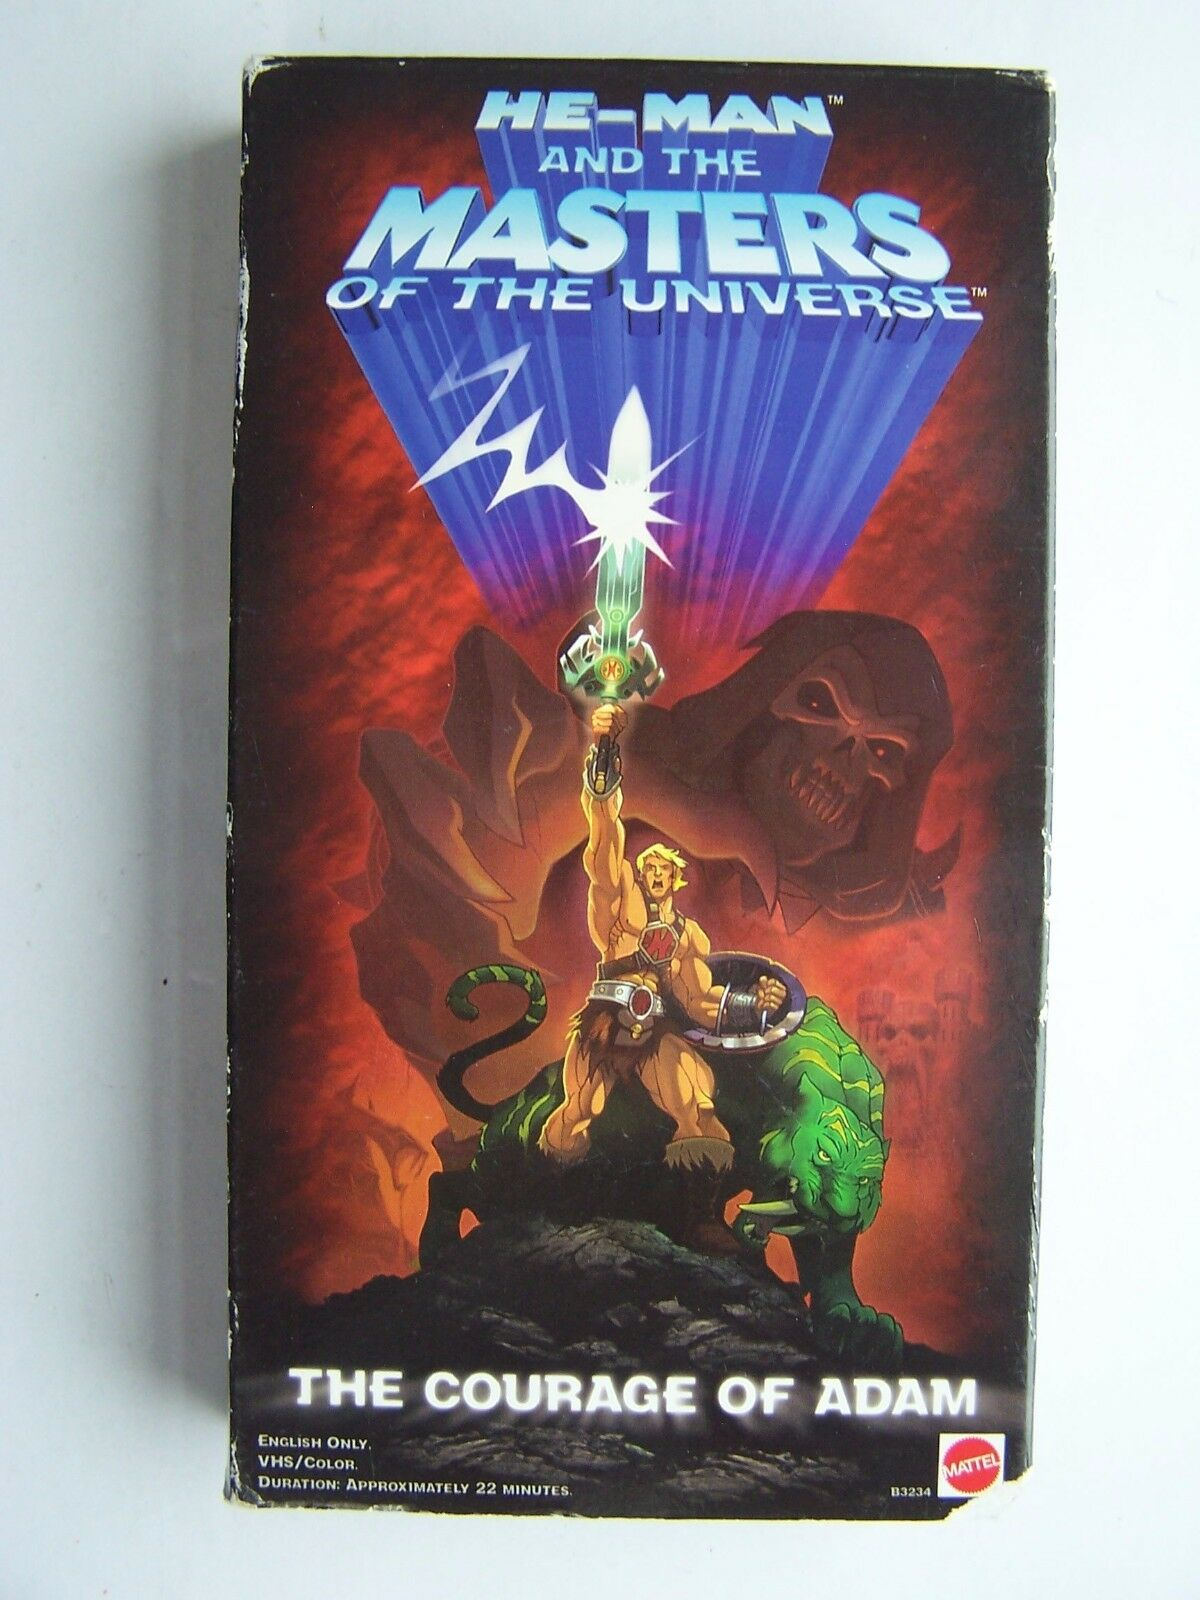 He-Man and the Masters of the Universe - The Courage of